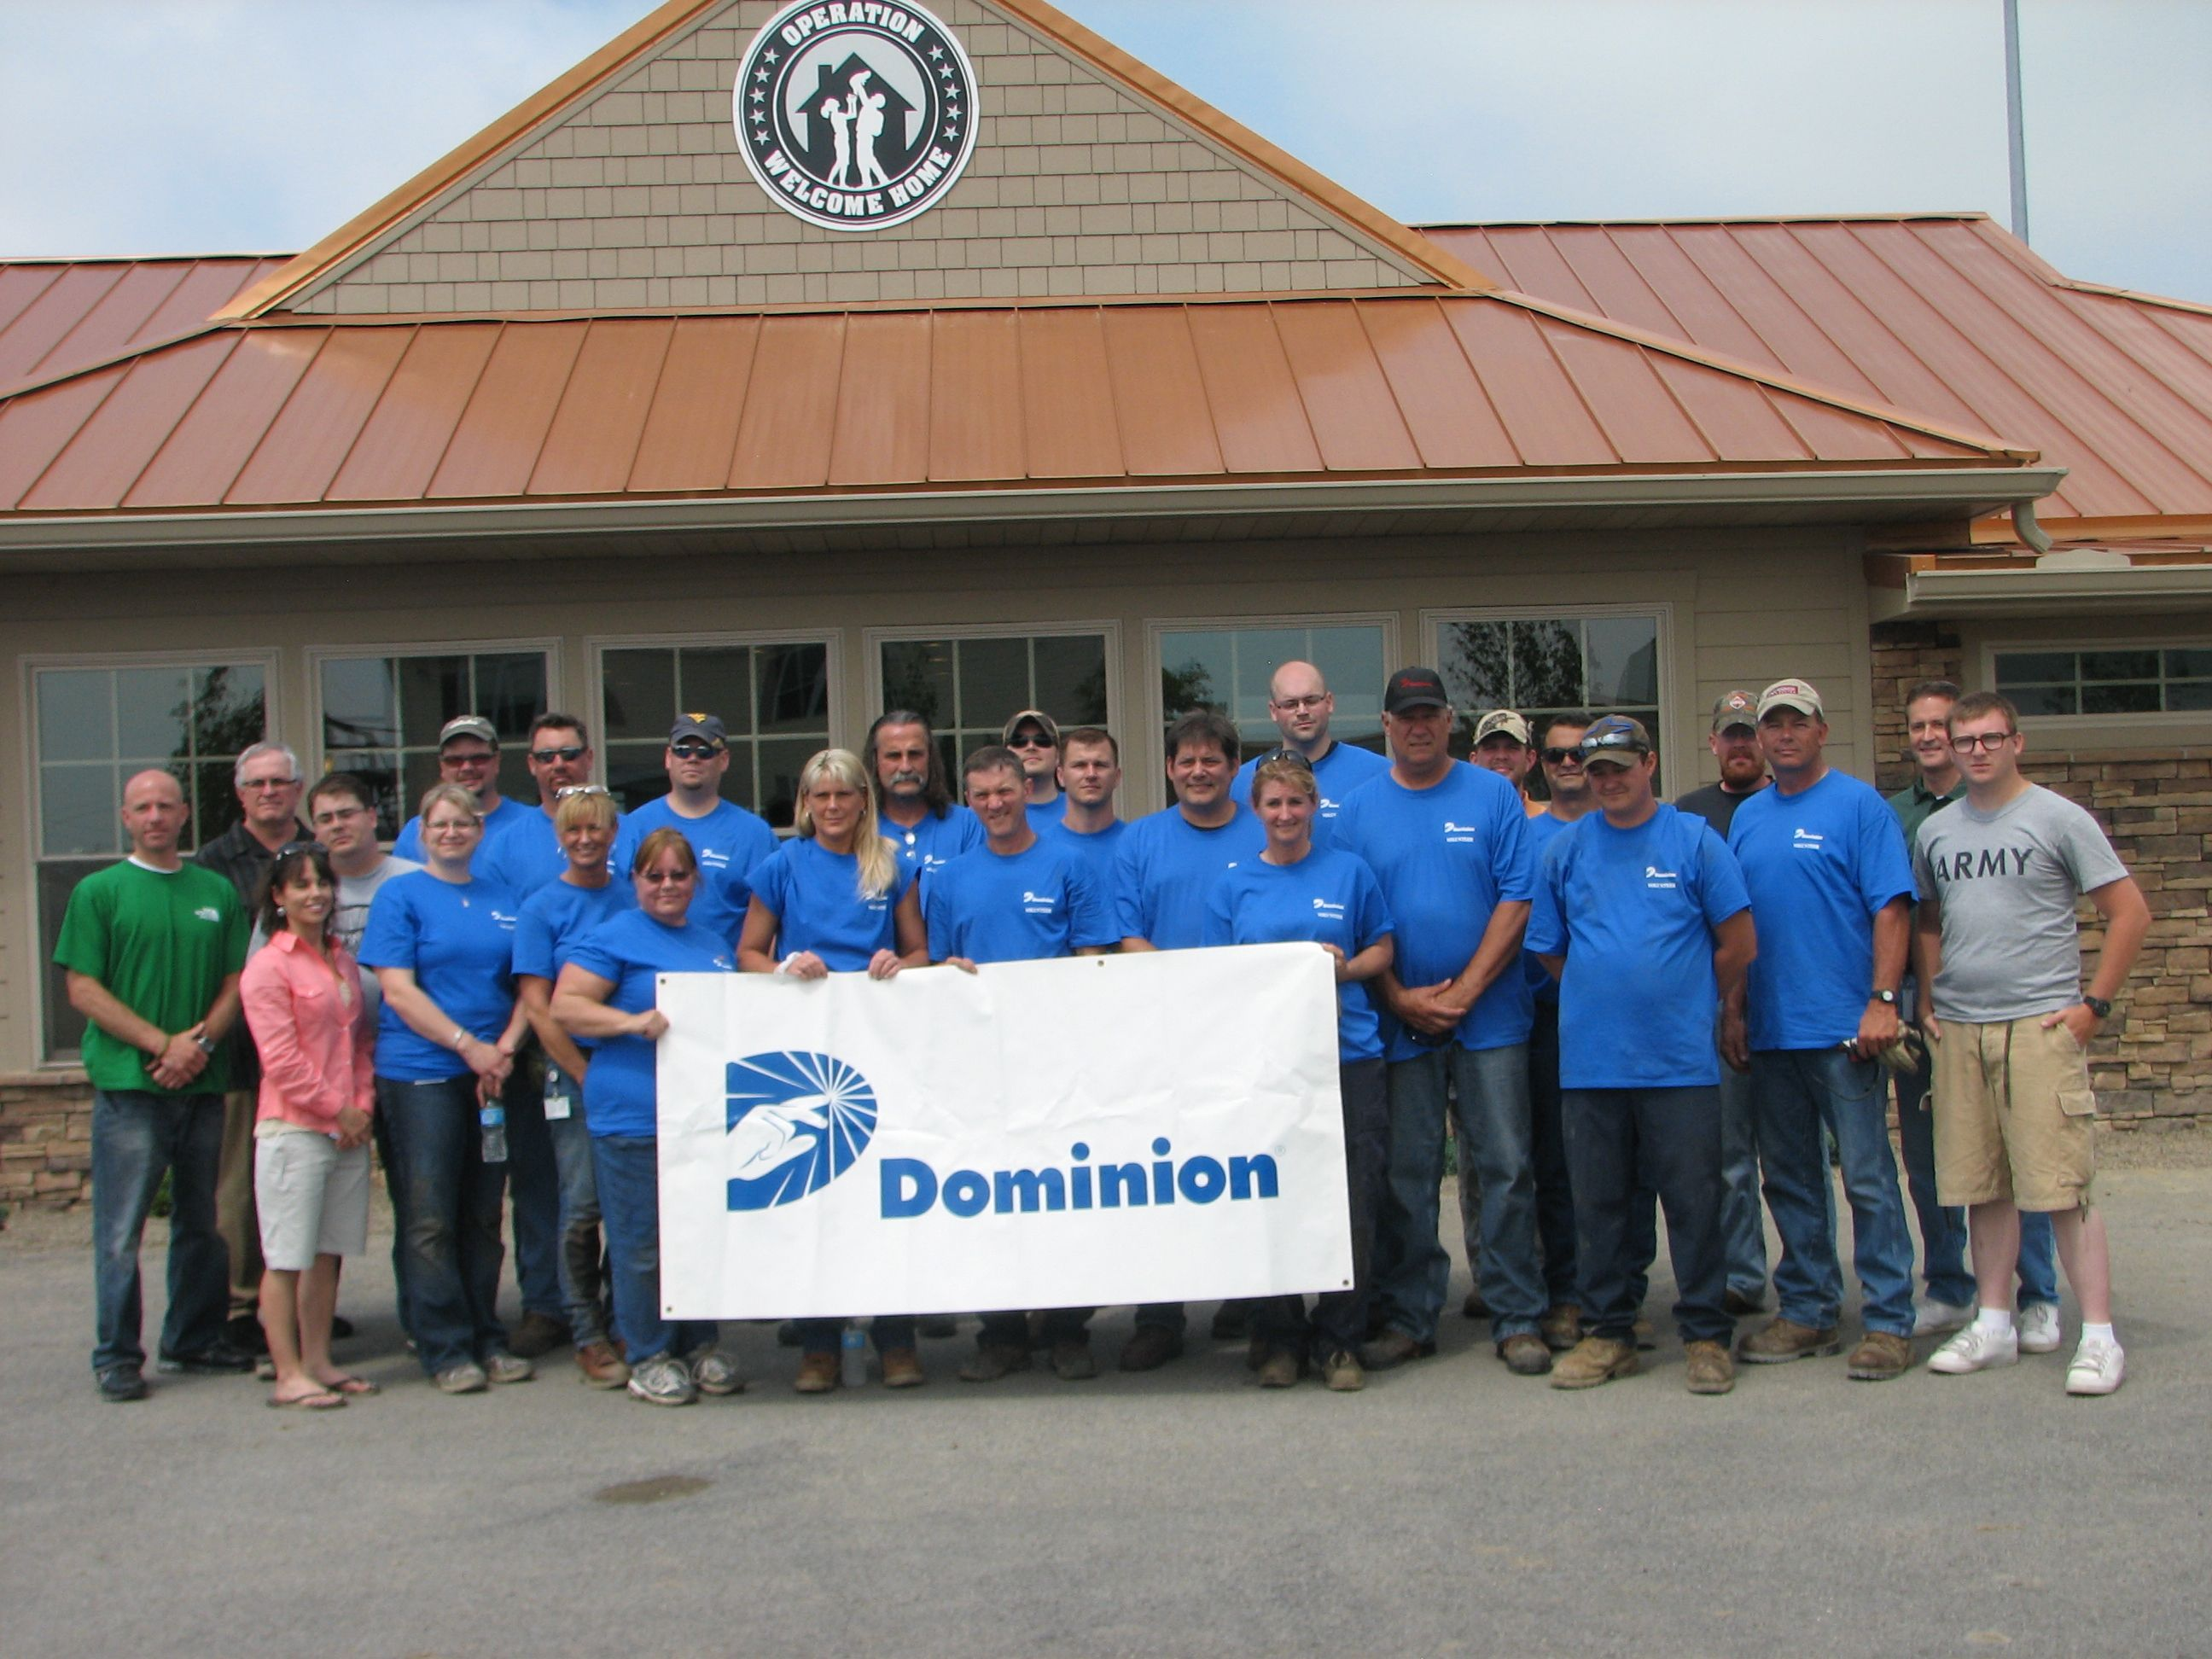 Dominion Power, VA Reps, and local supports got everything looking good!